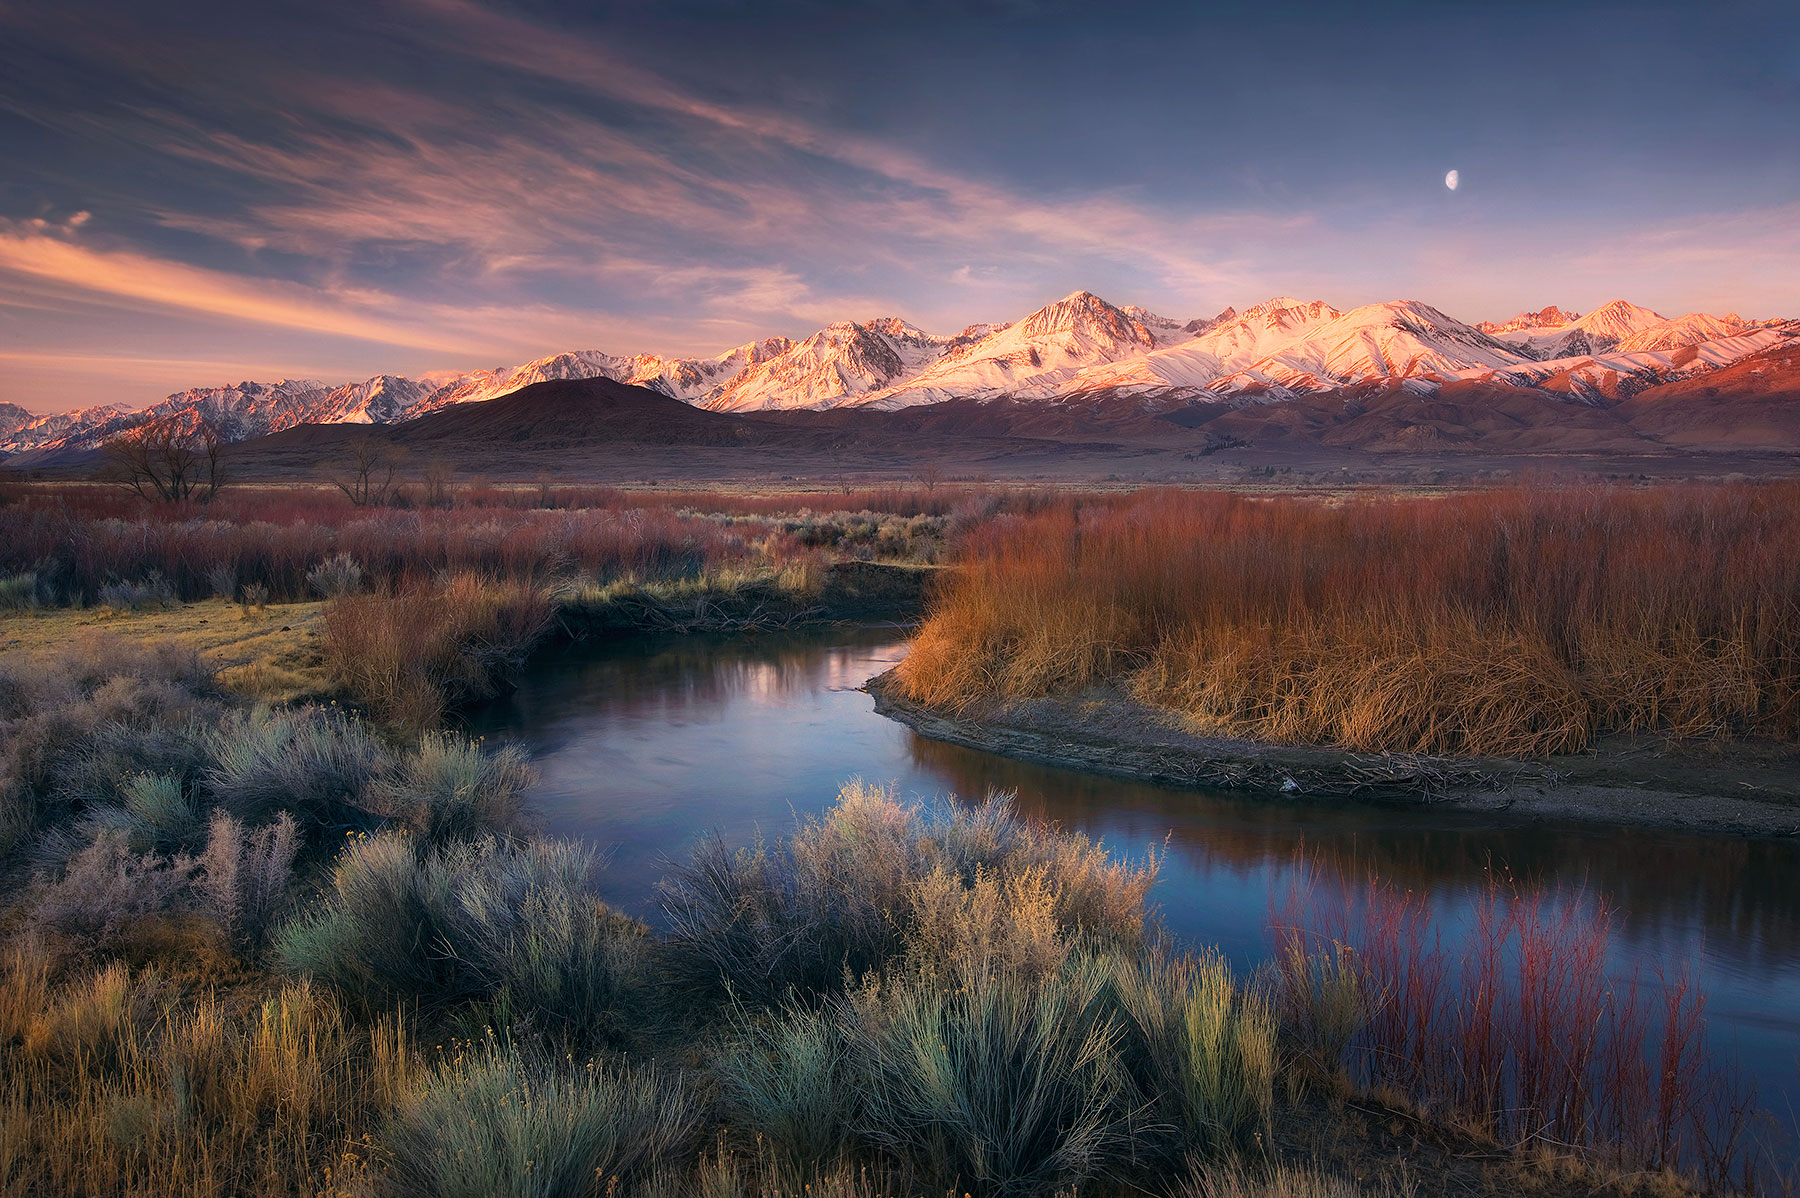 Moonset and sunrise from the banks of California's Owens River looking towards the Eastern Sierra.